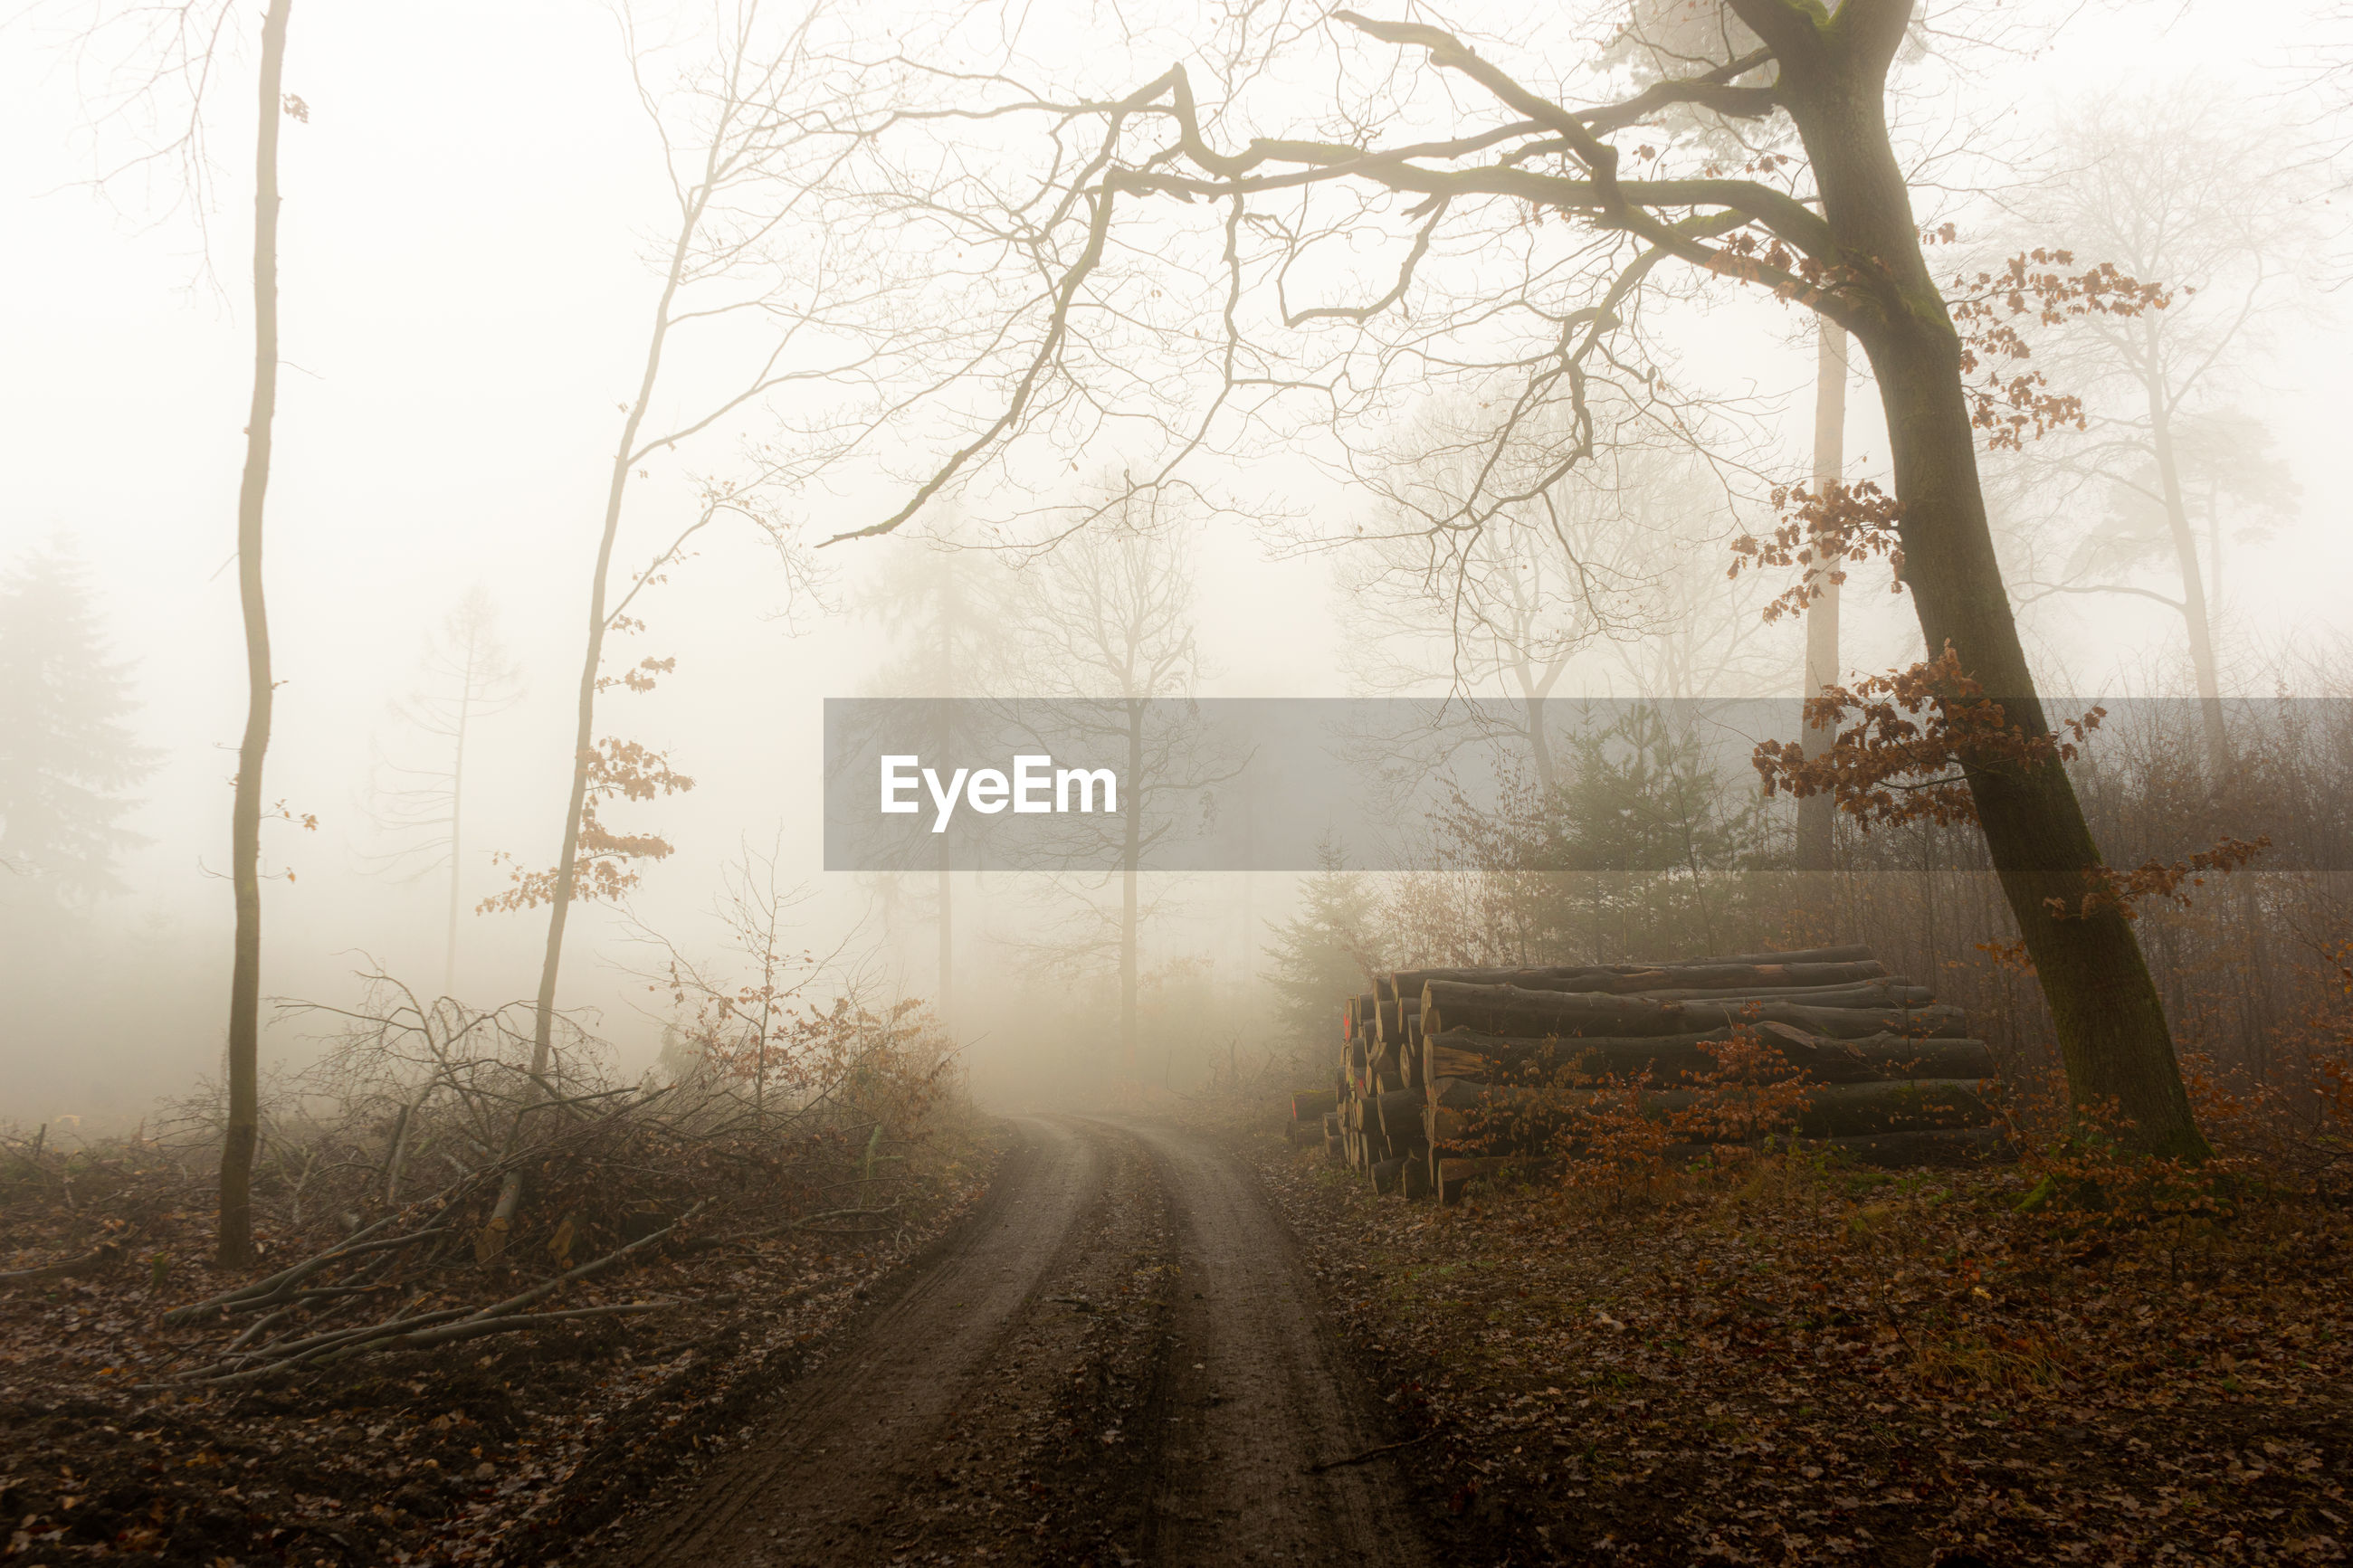 ROAD AMIDST TREES IN FOGGY WEATHER